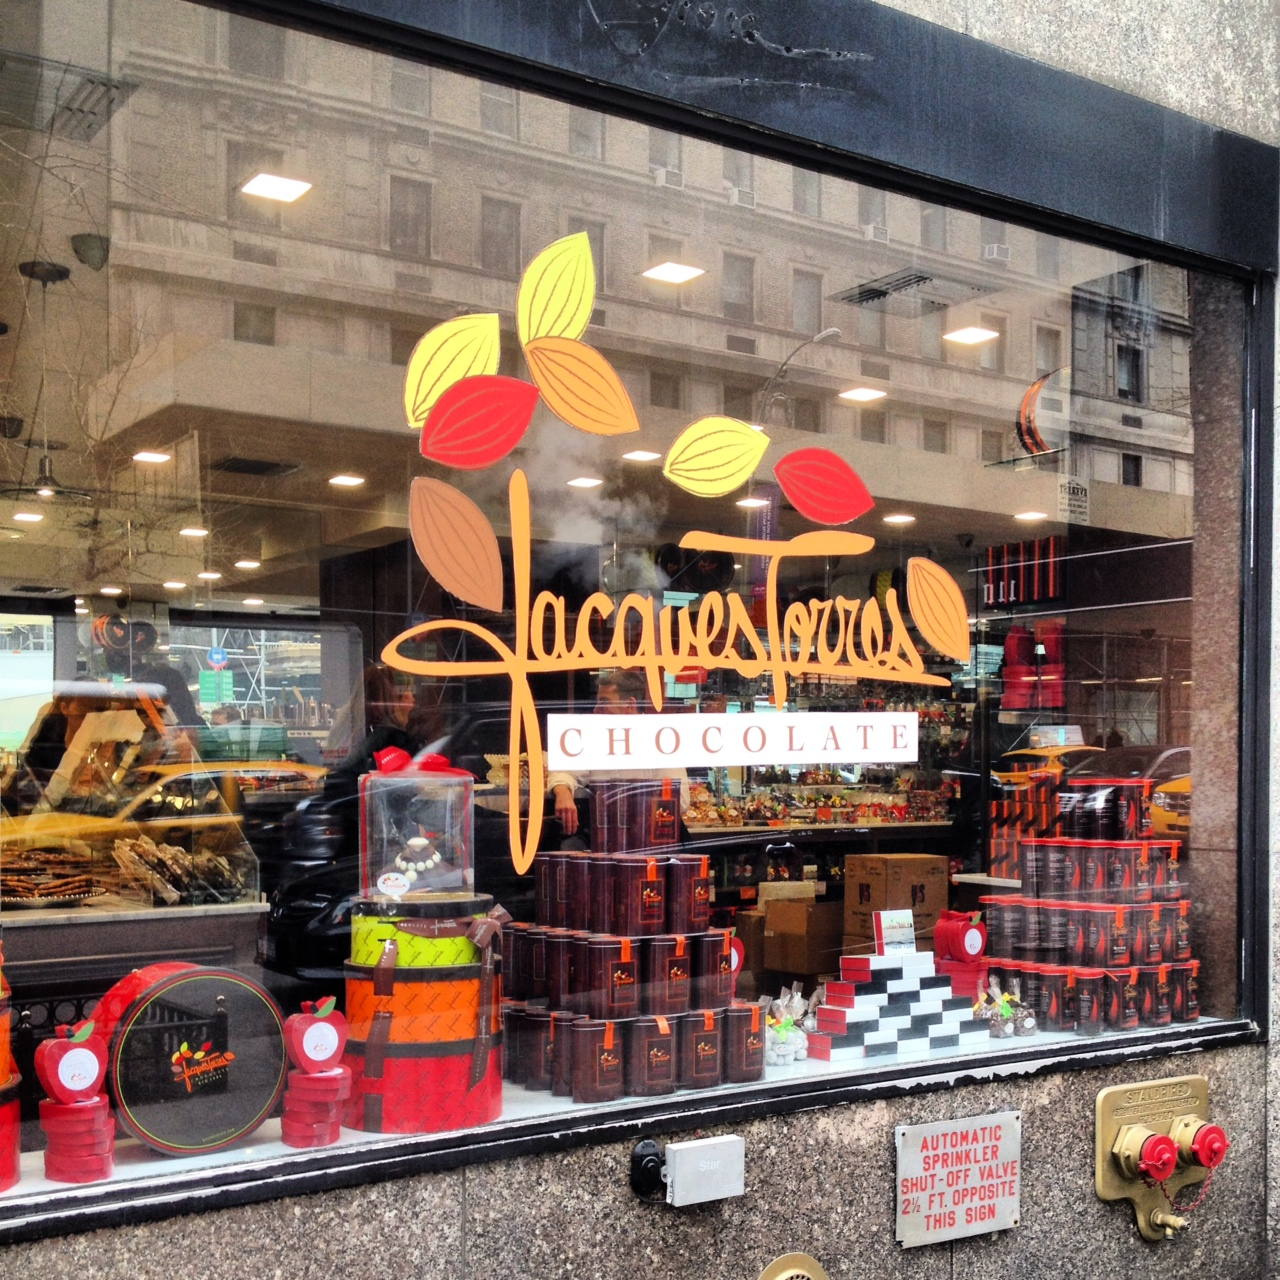 That Chocolate Place: Jacques Torres | NY Minute Now